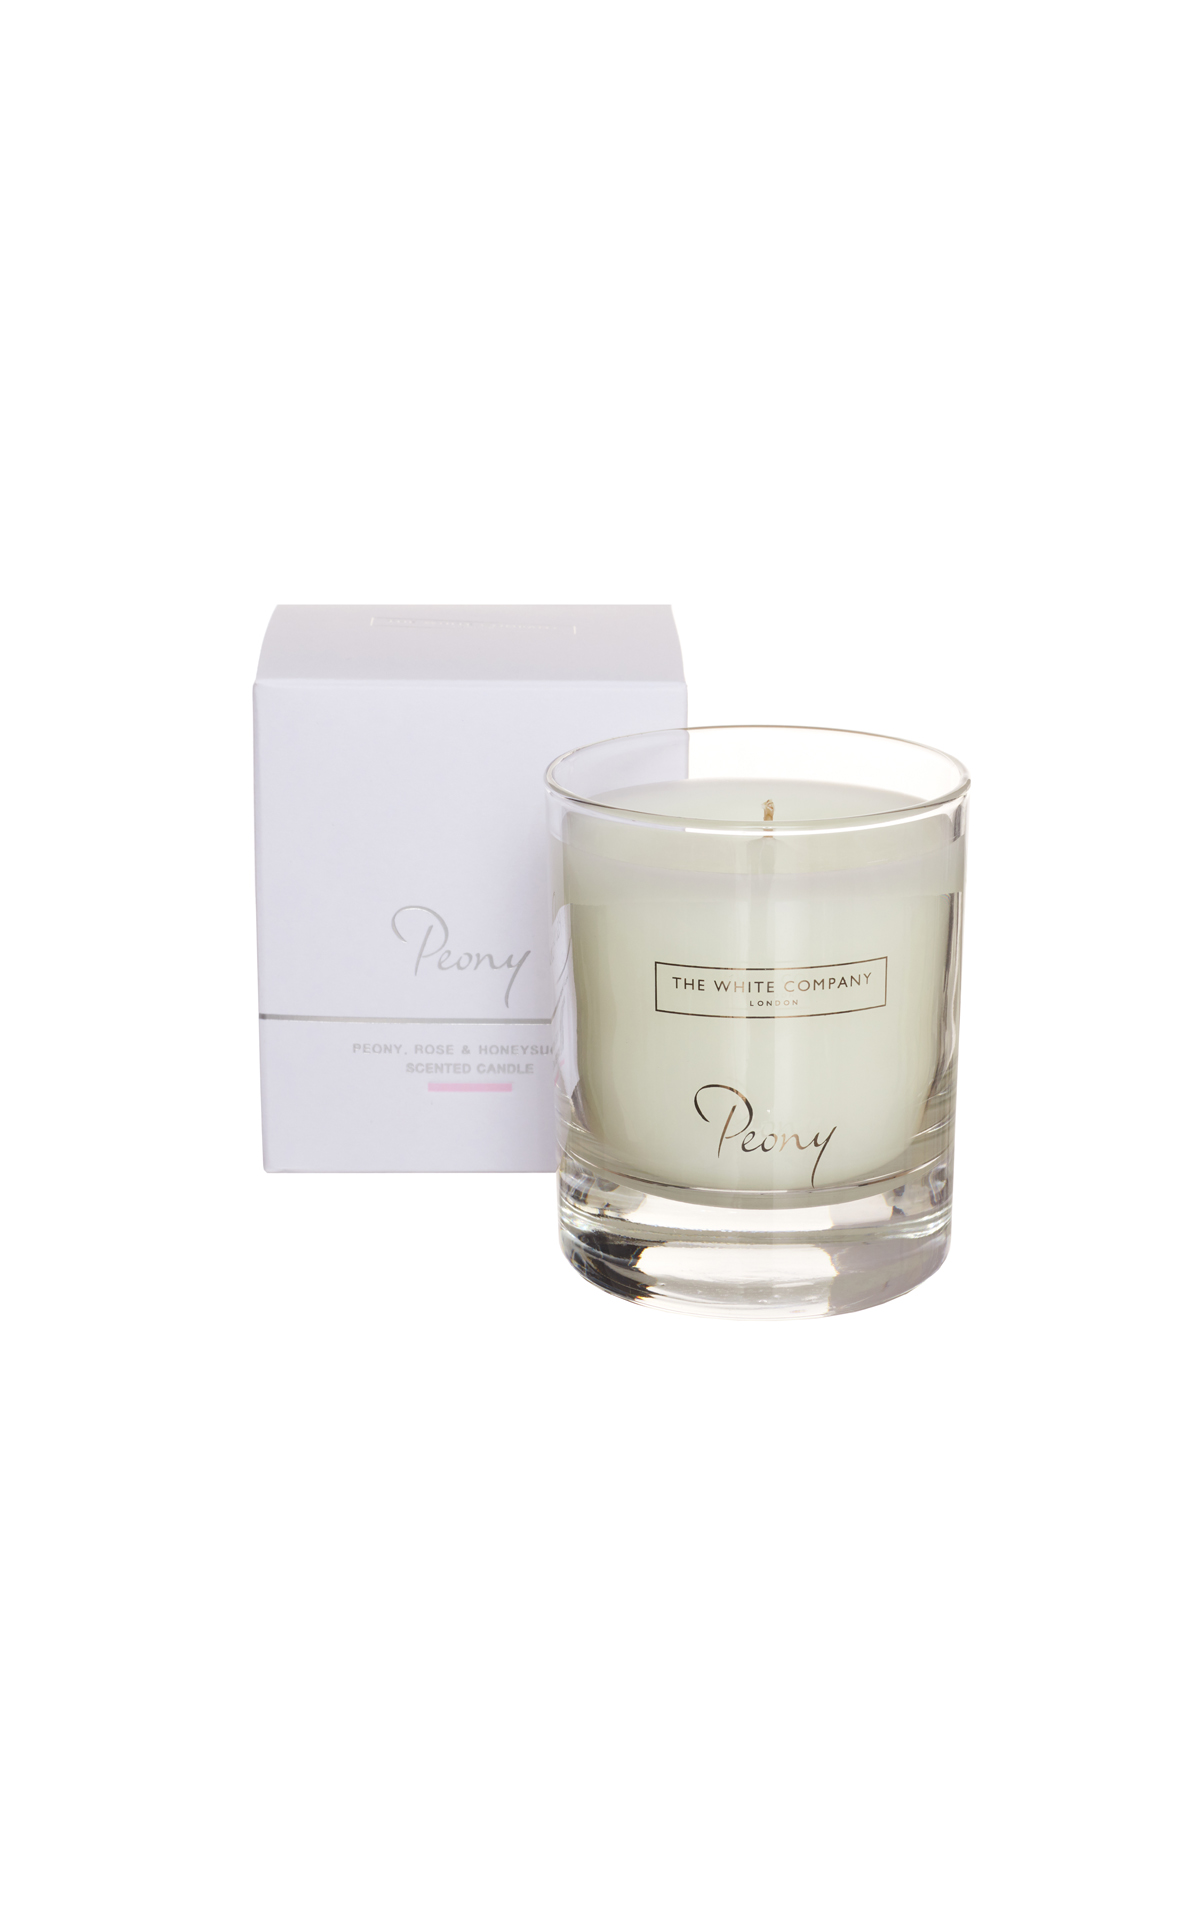 The White Company Peony candle from Bicester Village